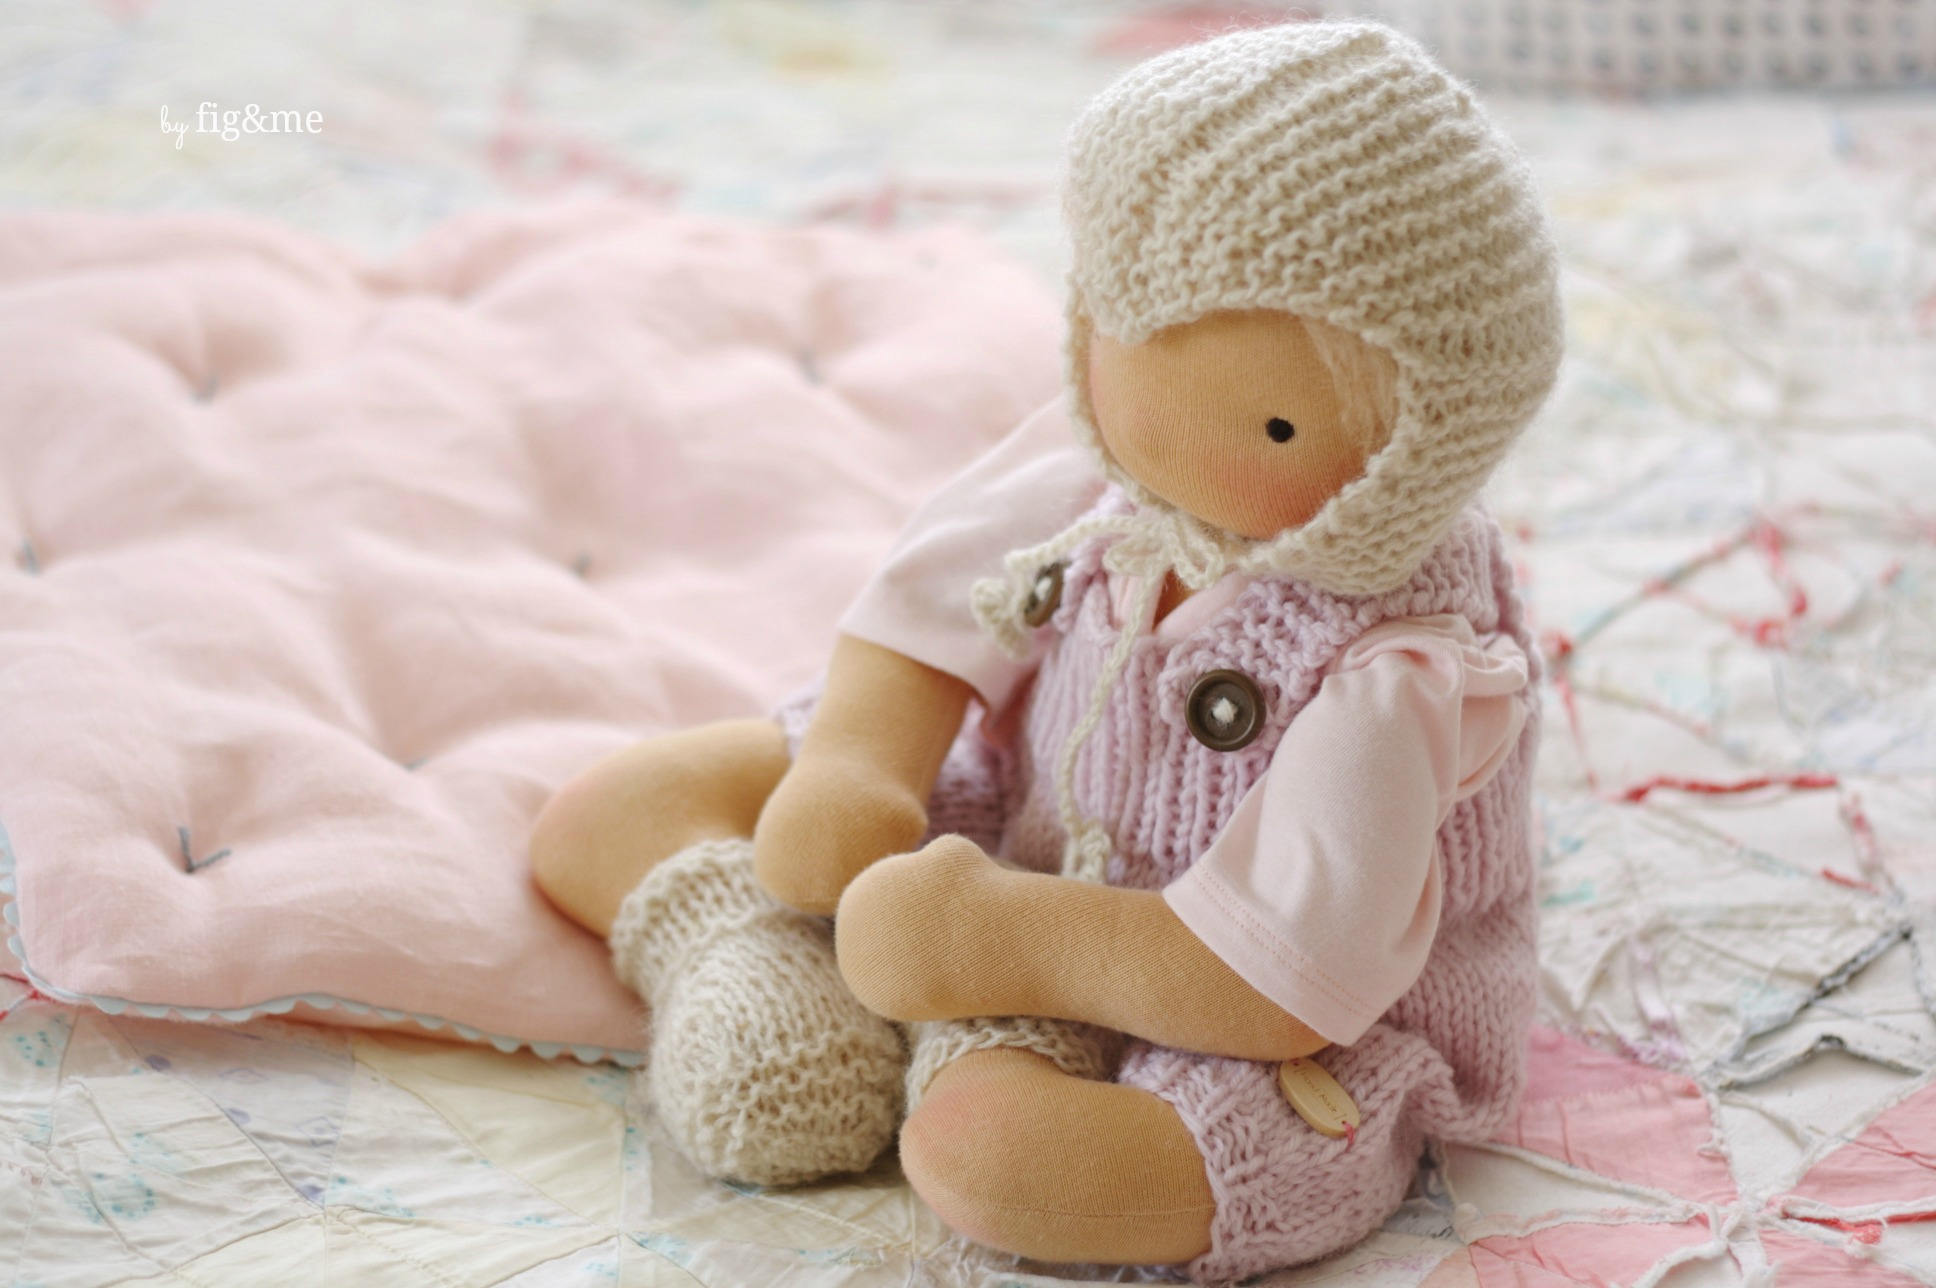 Little Baby Lou, by Fig&me